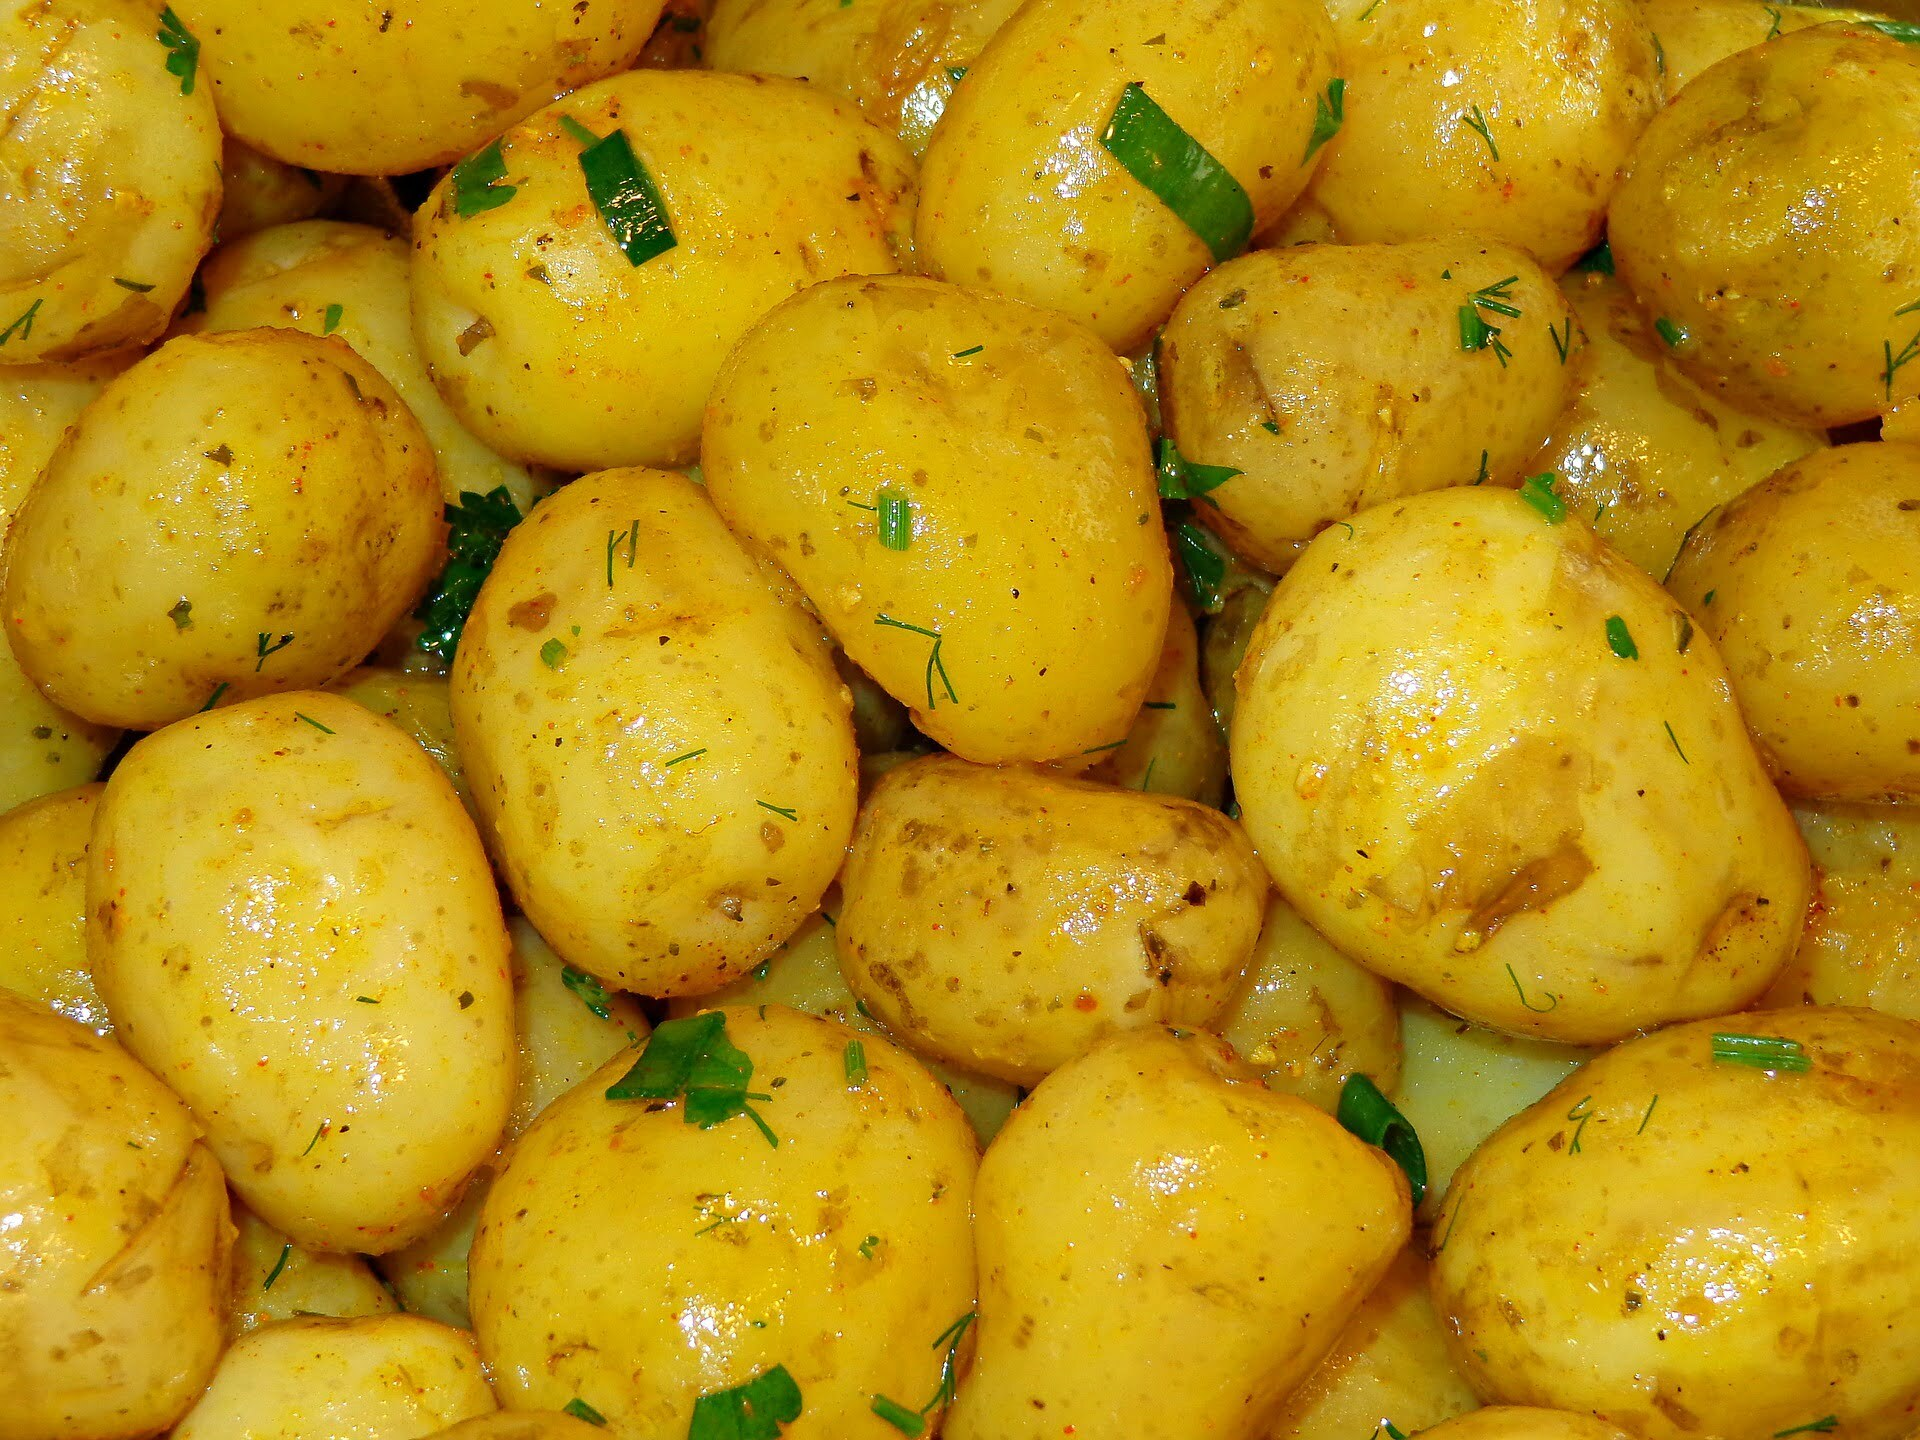 Boiled Potatoes With Herbs Recipe The Recipe Website Superb Side Dish